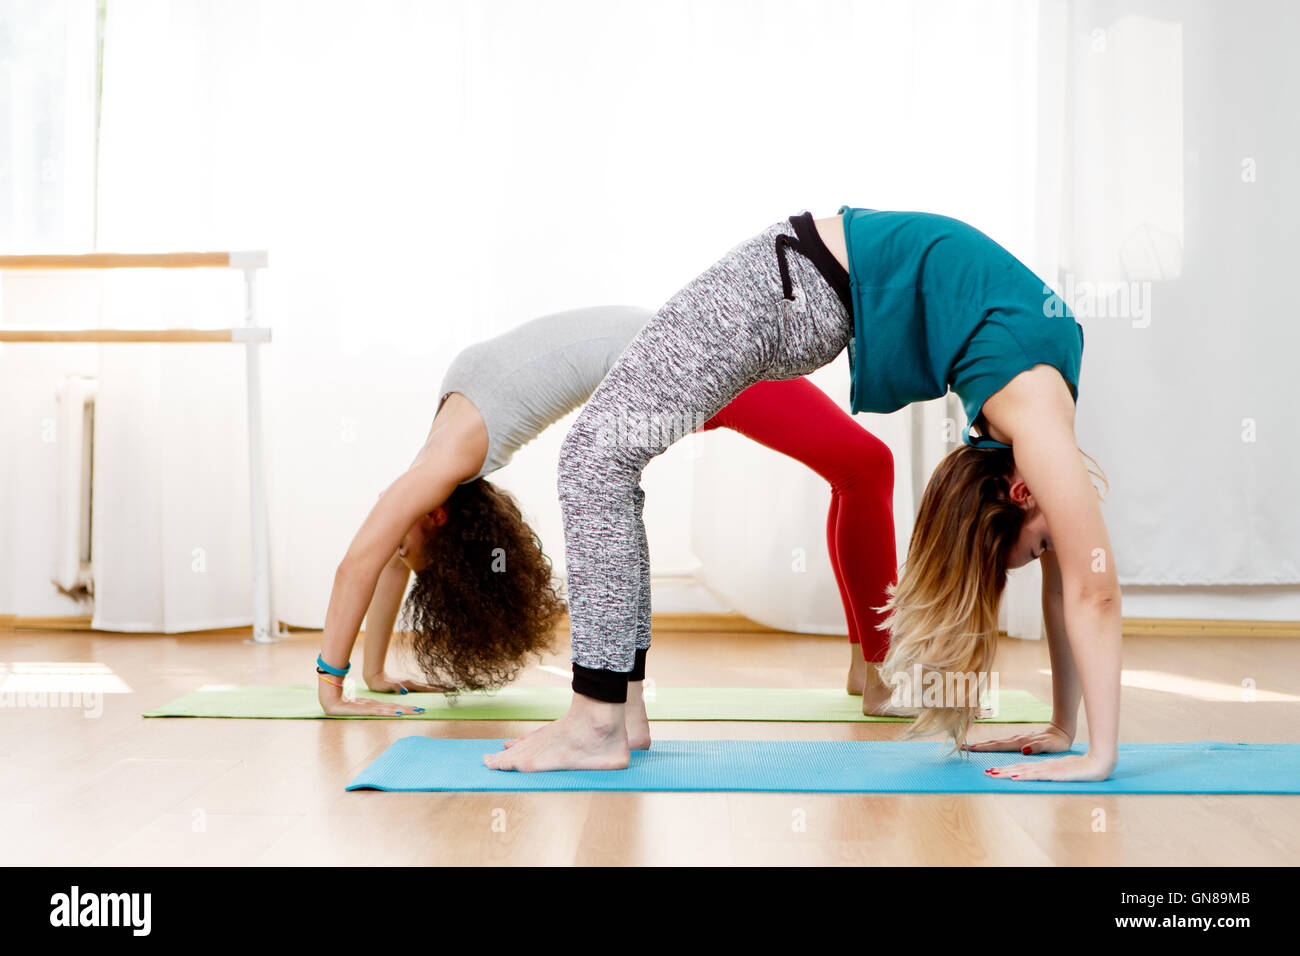 Two Young Girls Doing Back Bend Pose In Yoga Class Stock Photo Alamy